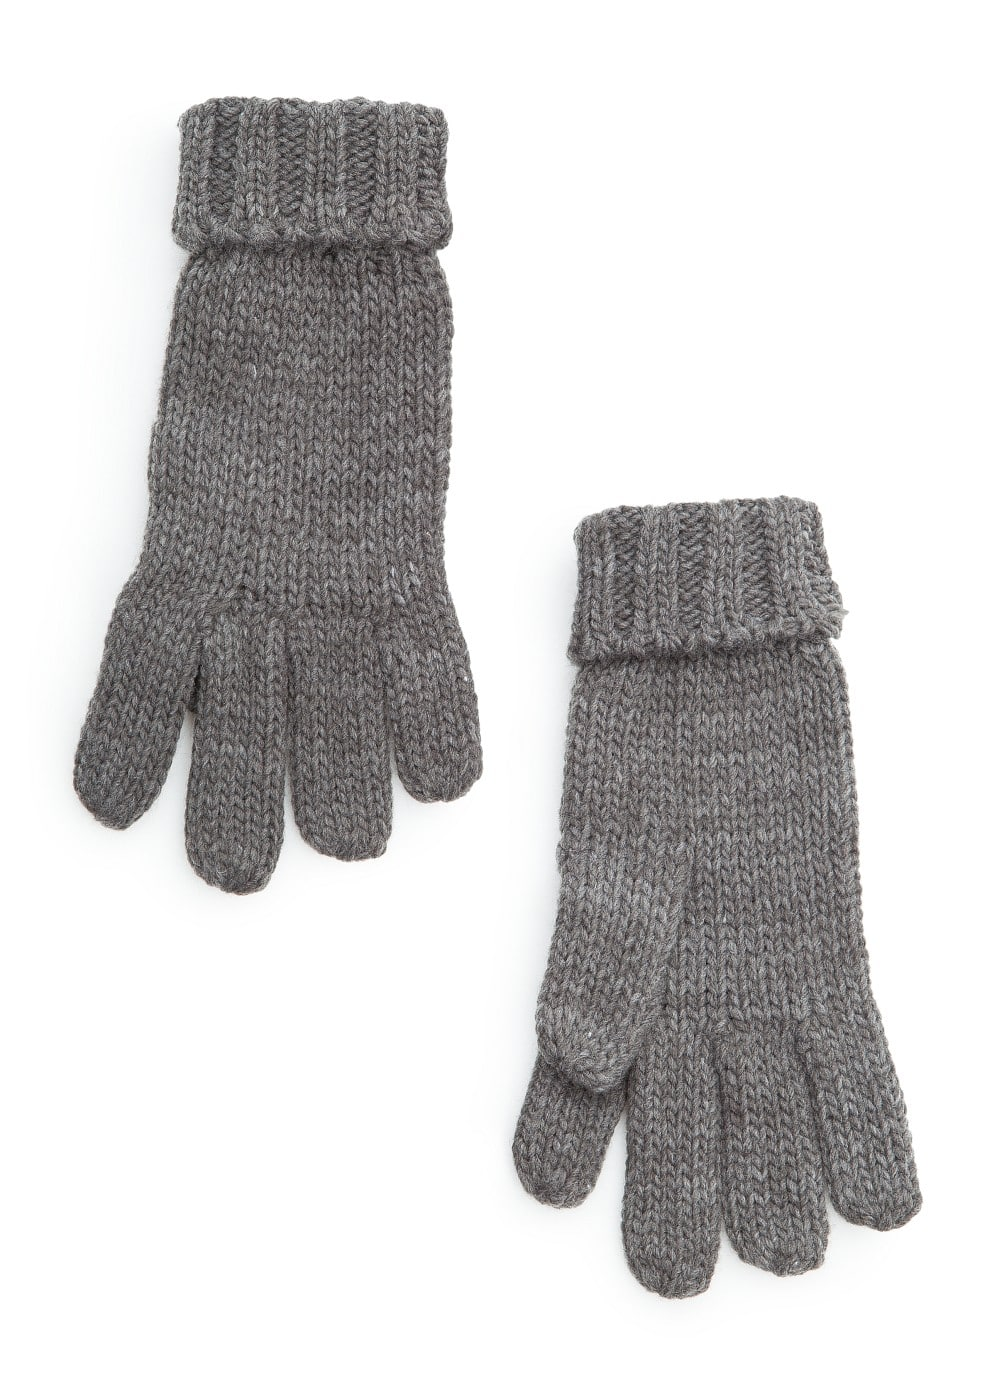 Wrapped cuffs knitted gloves